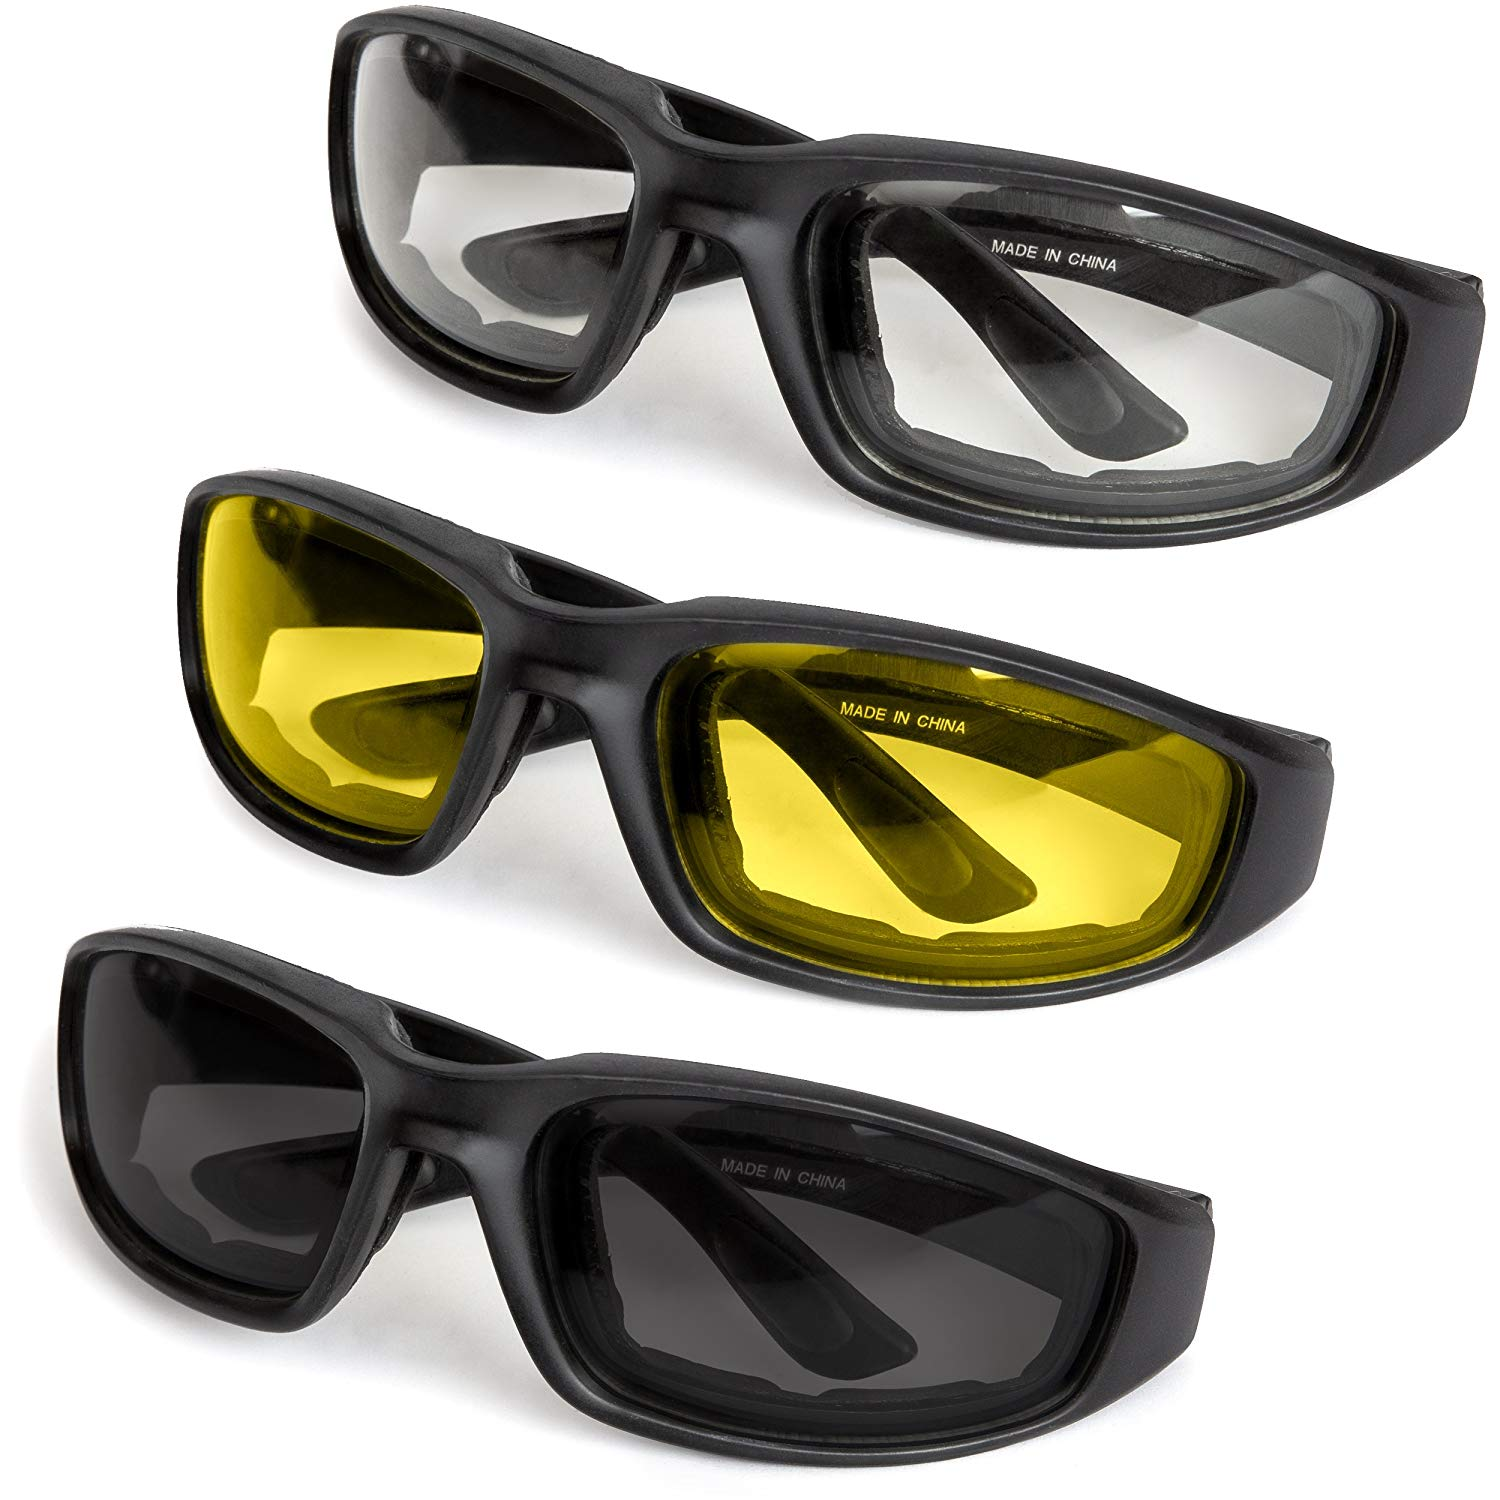 8e48ea2aa9 The 10 Best Safety Glasses and Safety Goggles to Buy 2019 - Auto ...